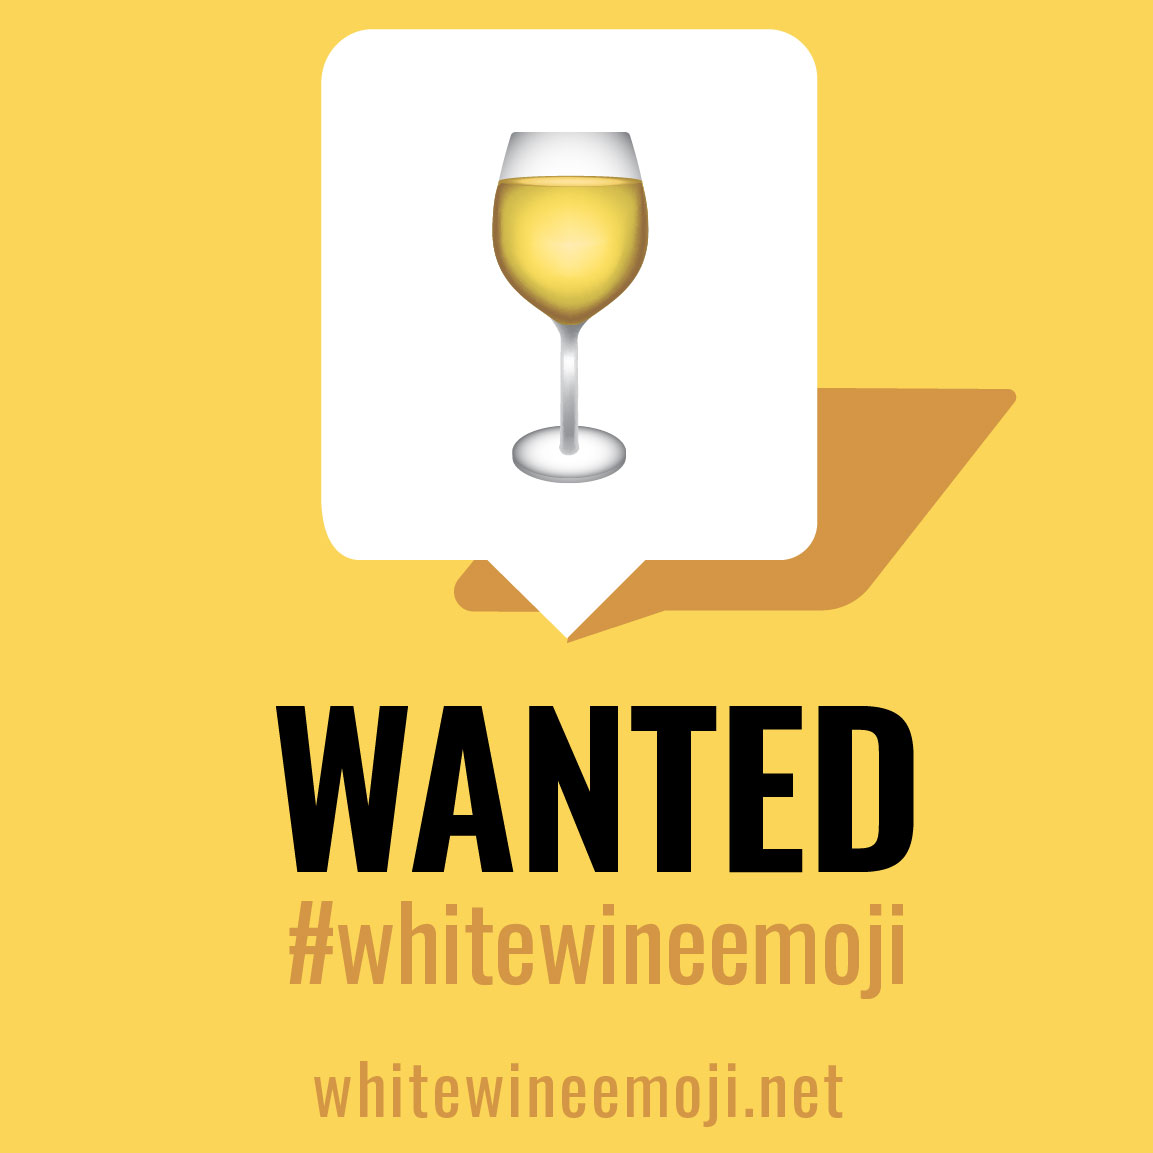 KJ-white-wine-Emoji-FT-BLOG0819.jpg